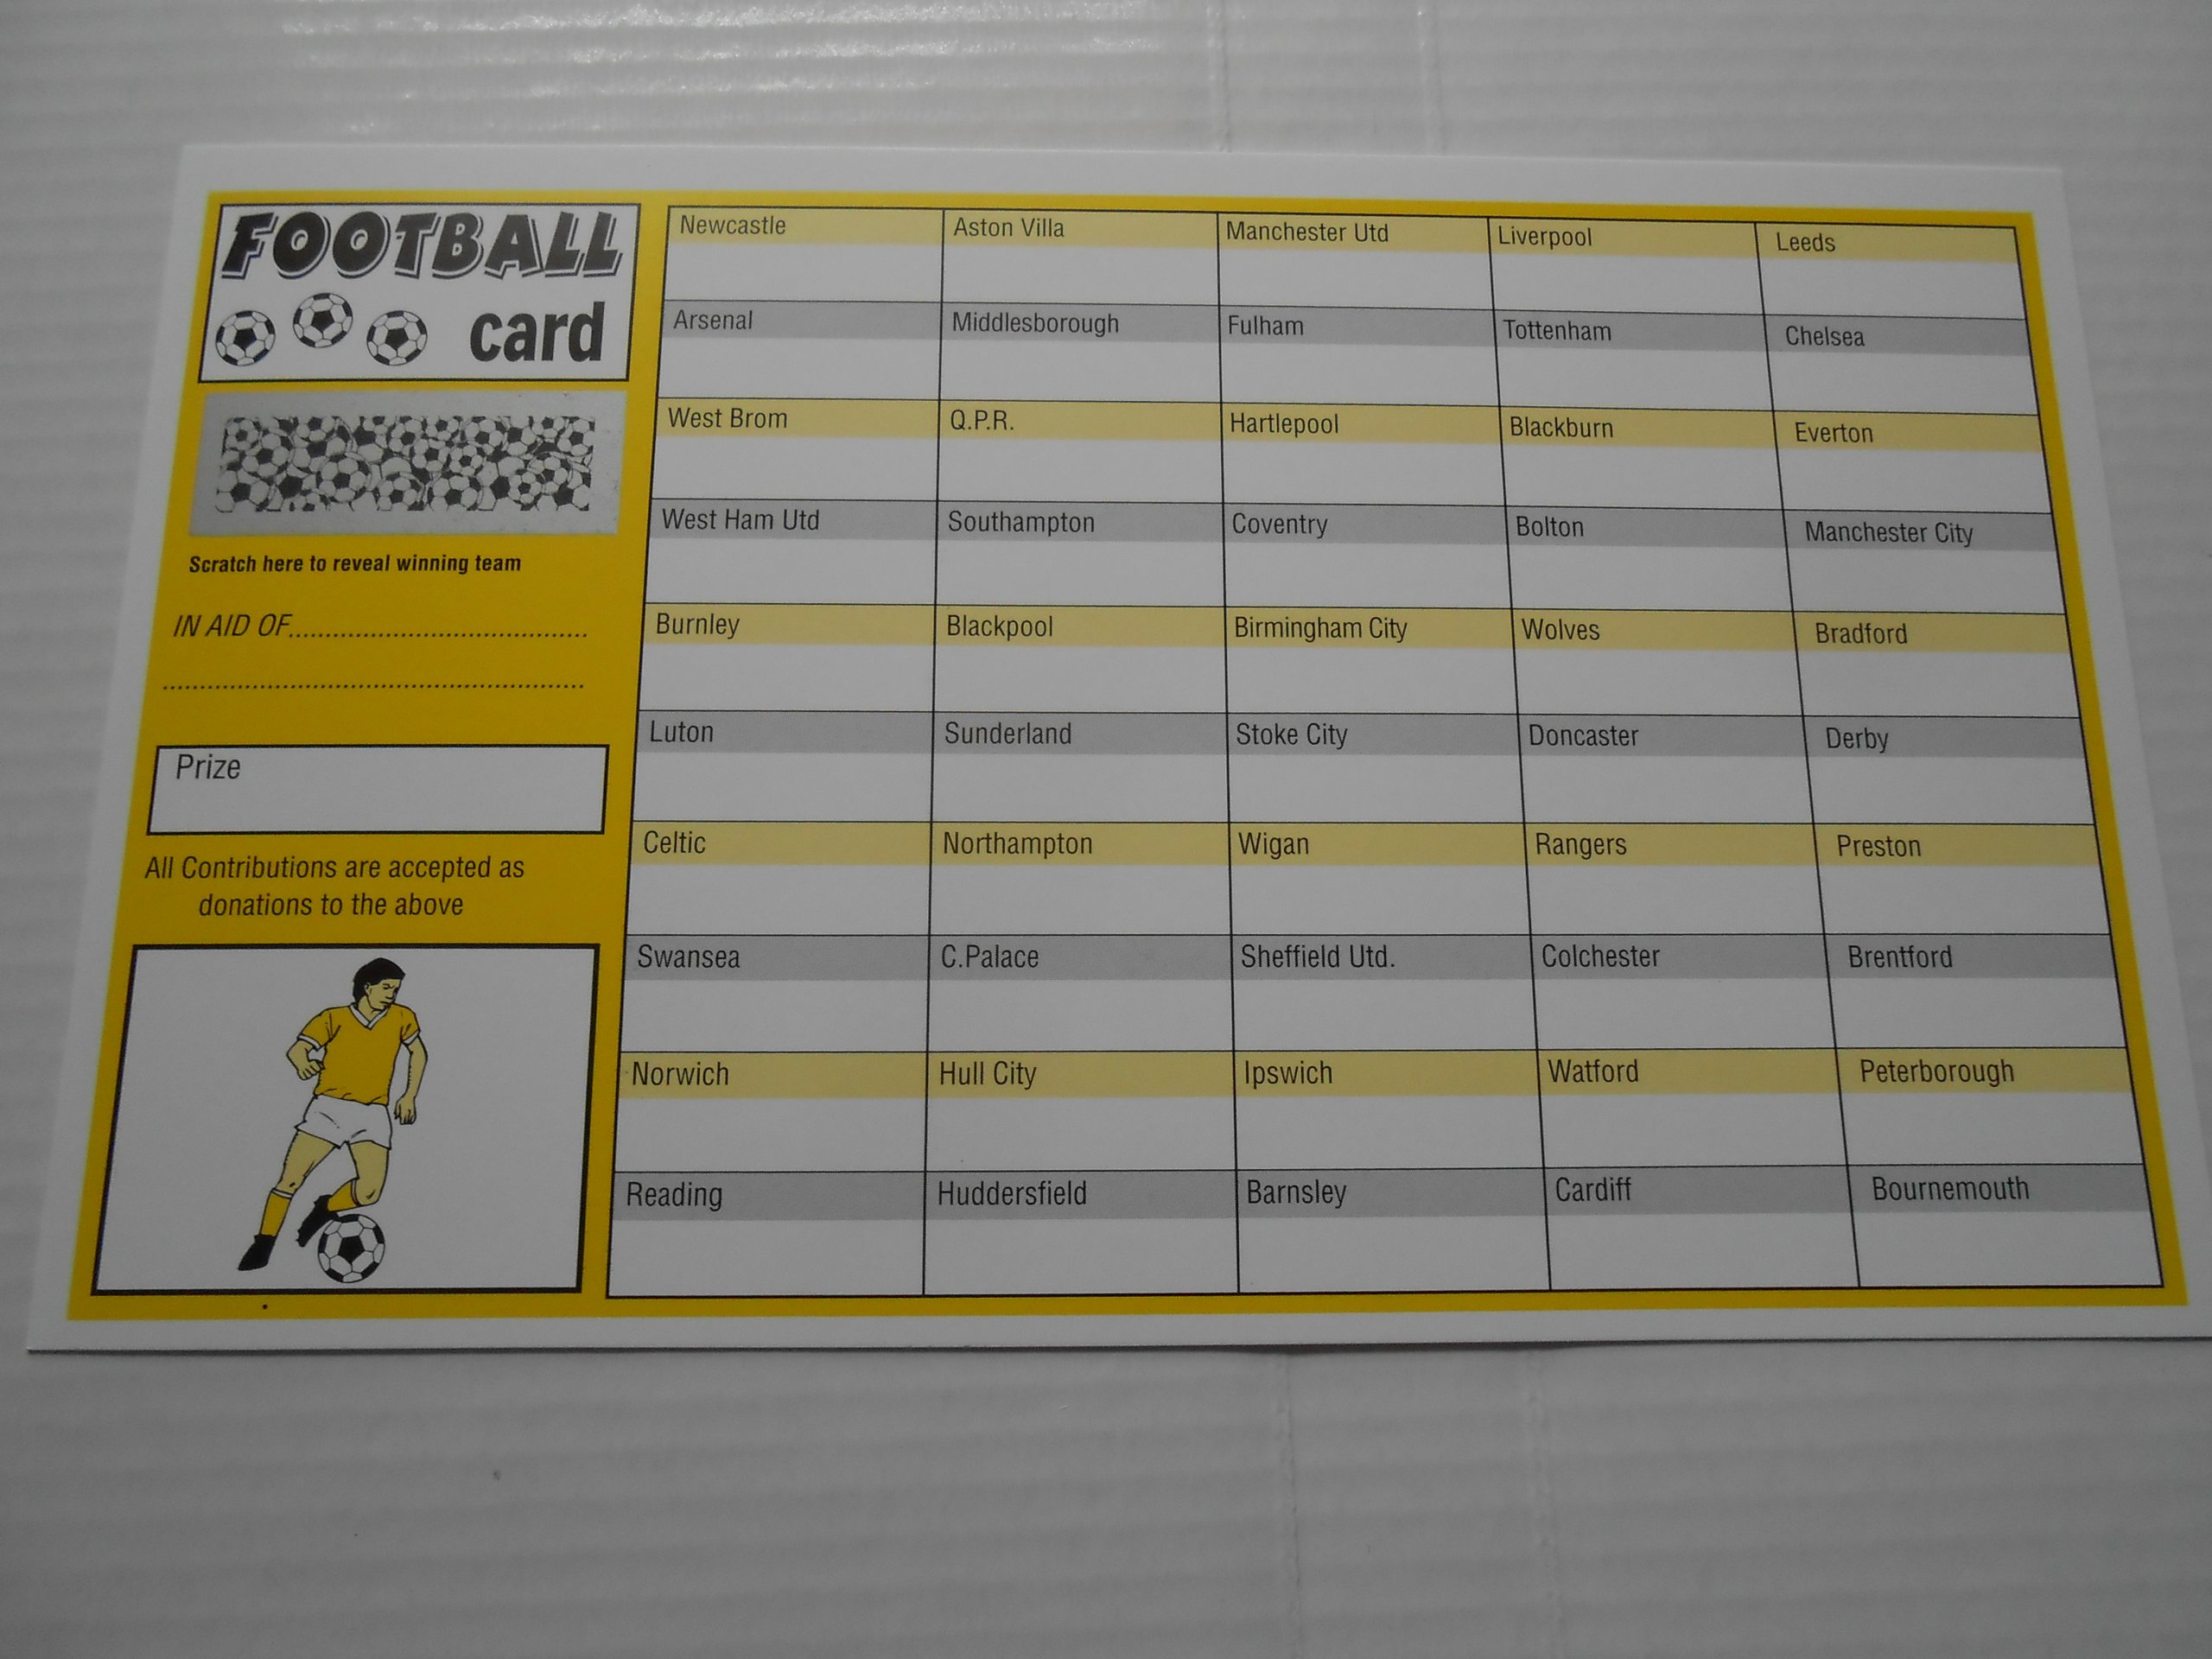 FOOTBALL SCRATCH CARD X 1 ONLY = 100 SPACES = EASY WAY TO RAISE FUNDS